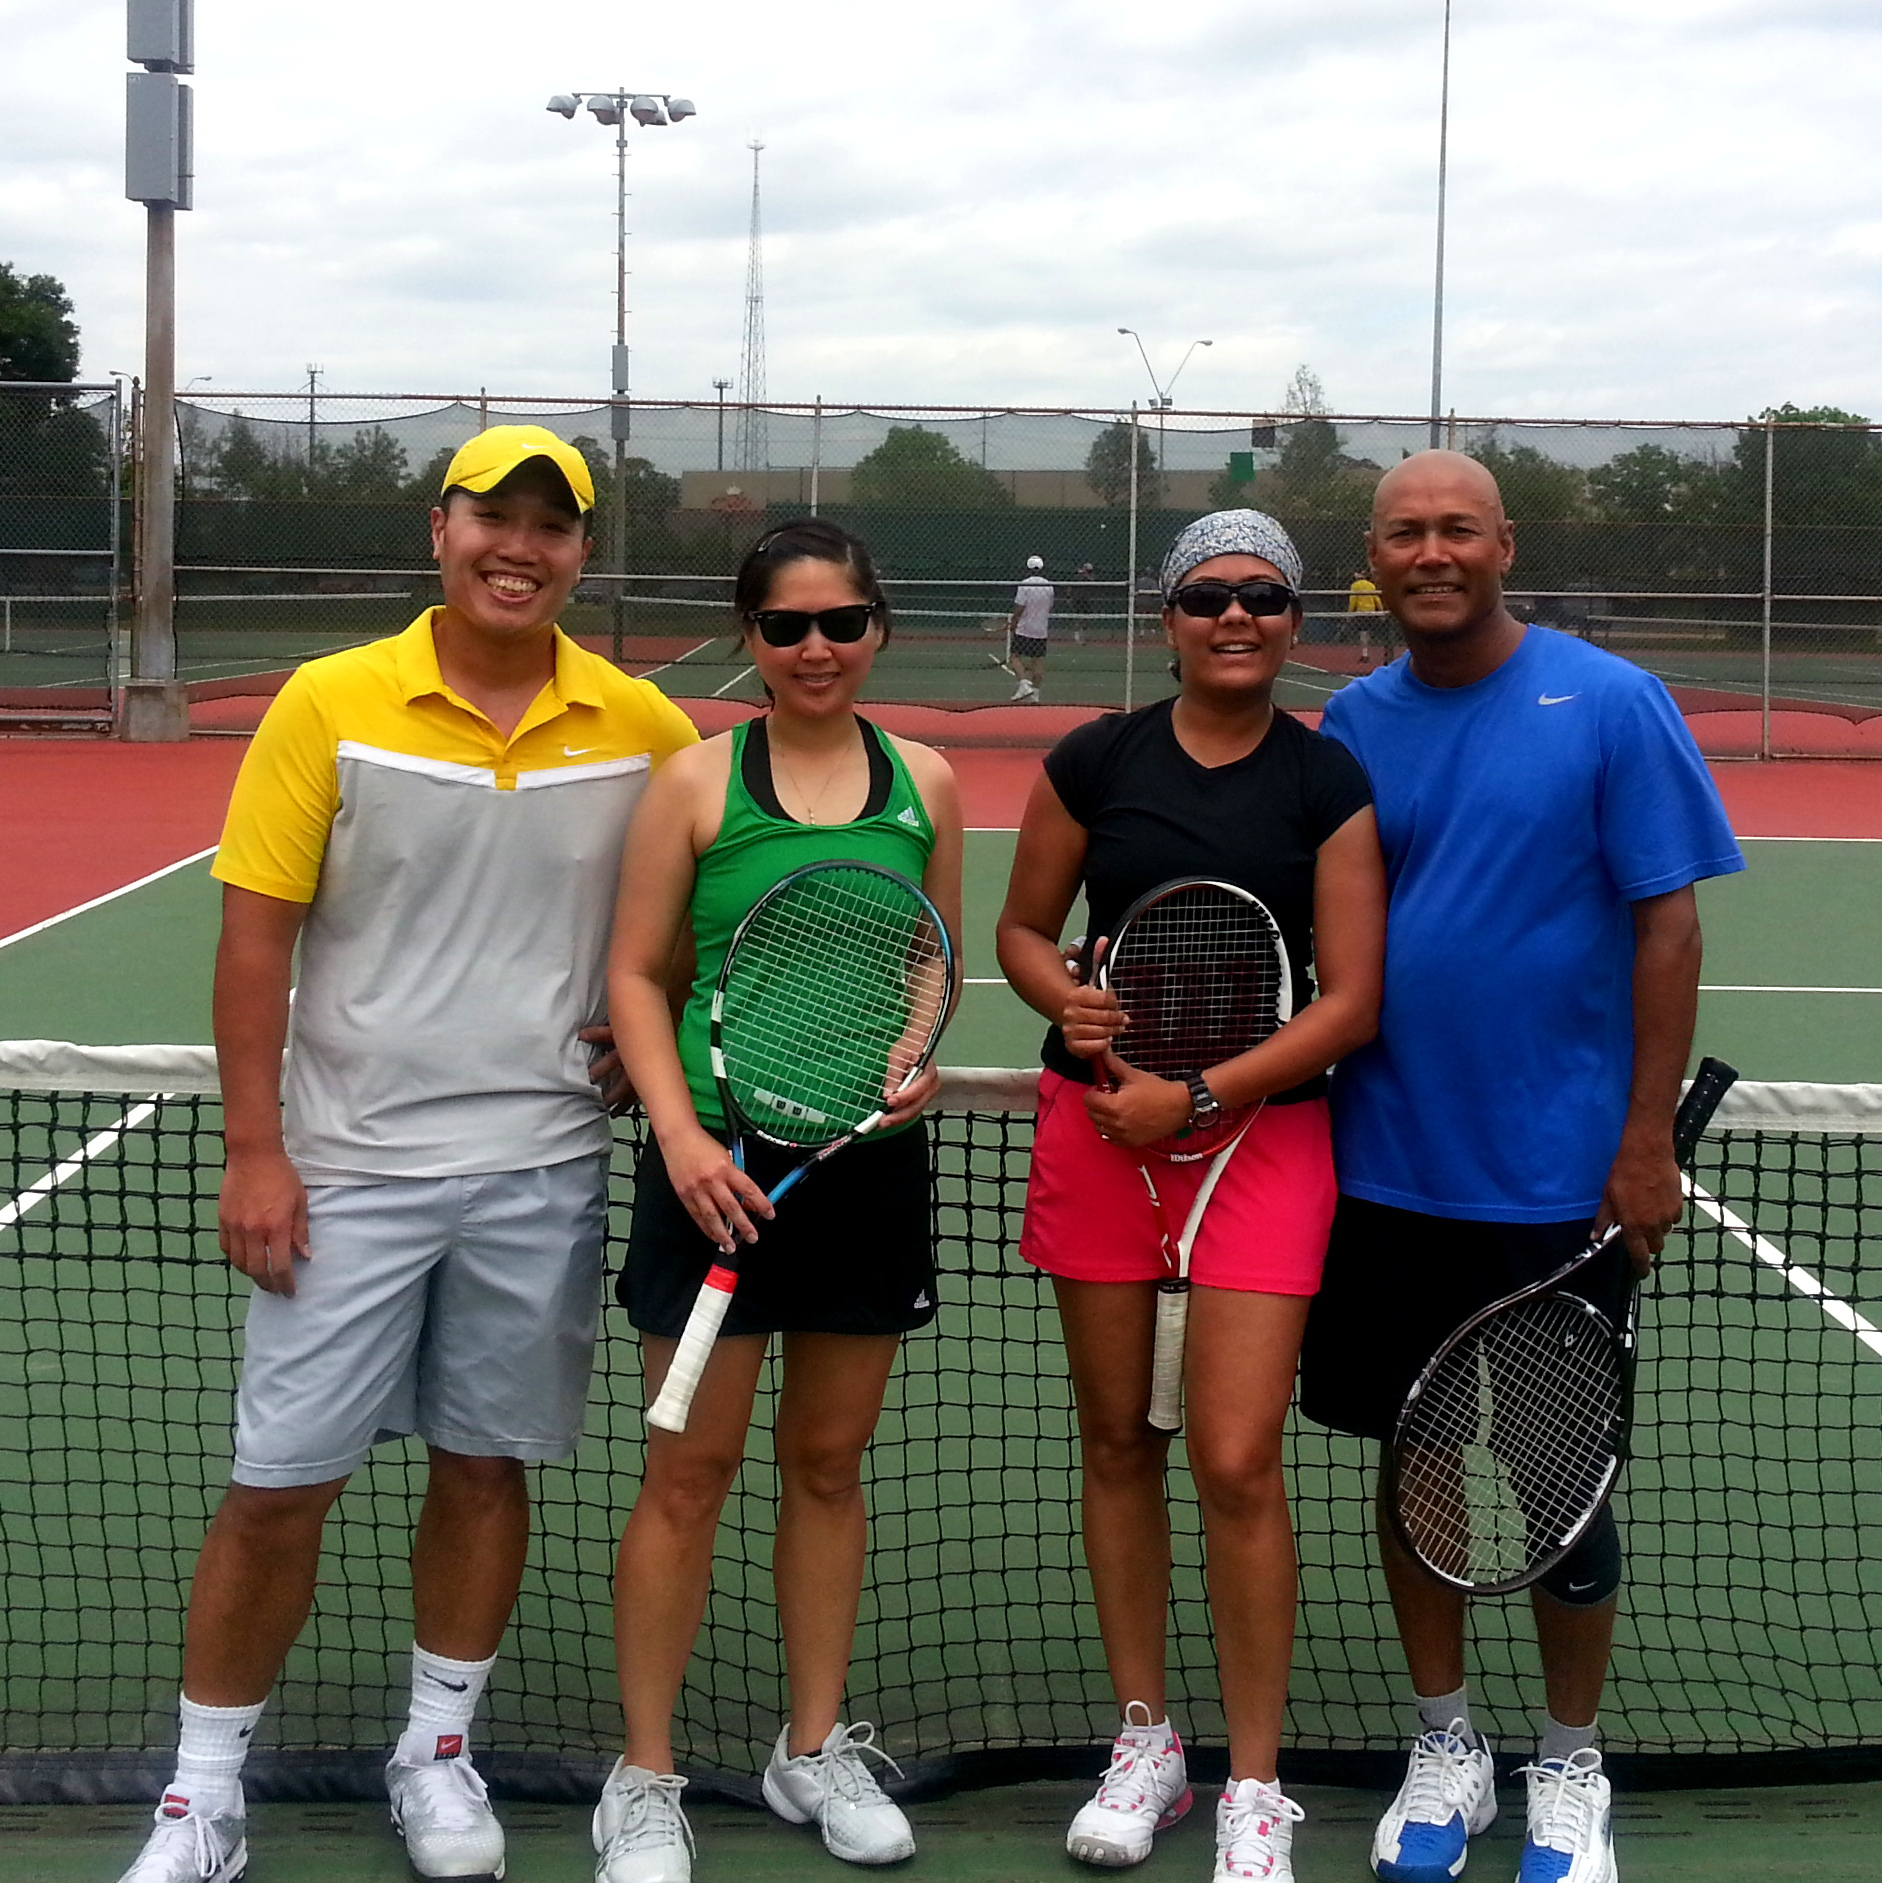 Winter 2013 Doubles-Mixed Championship Gallery